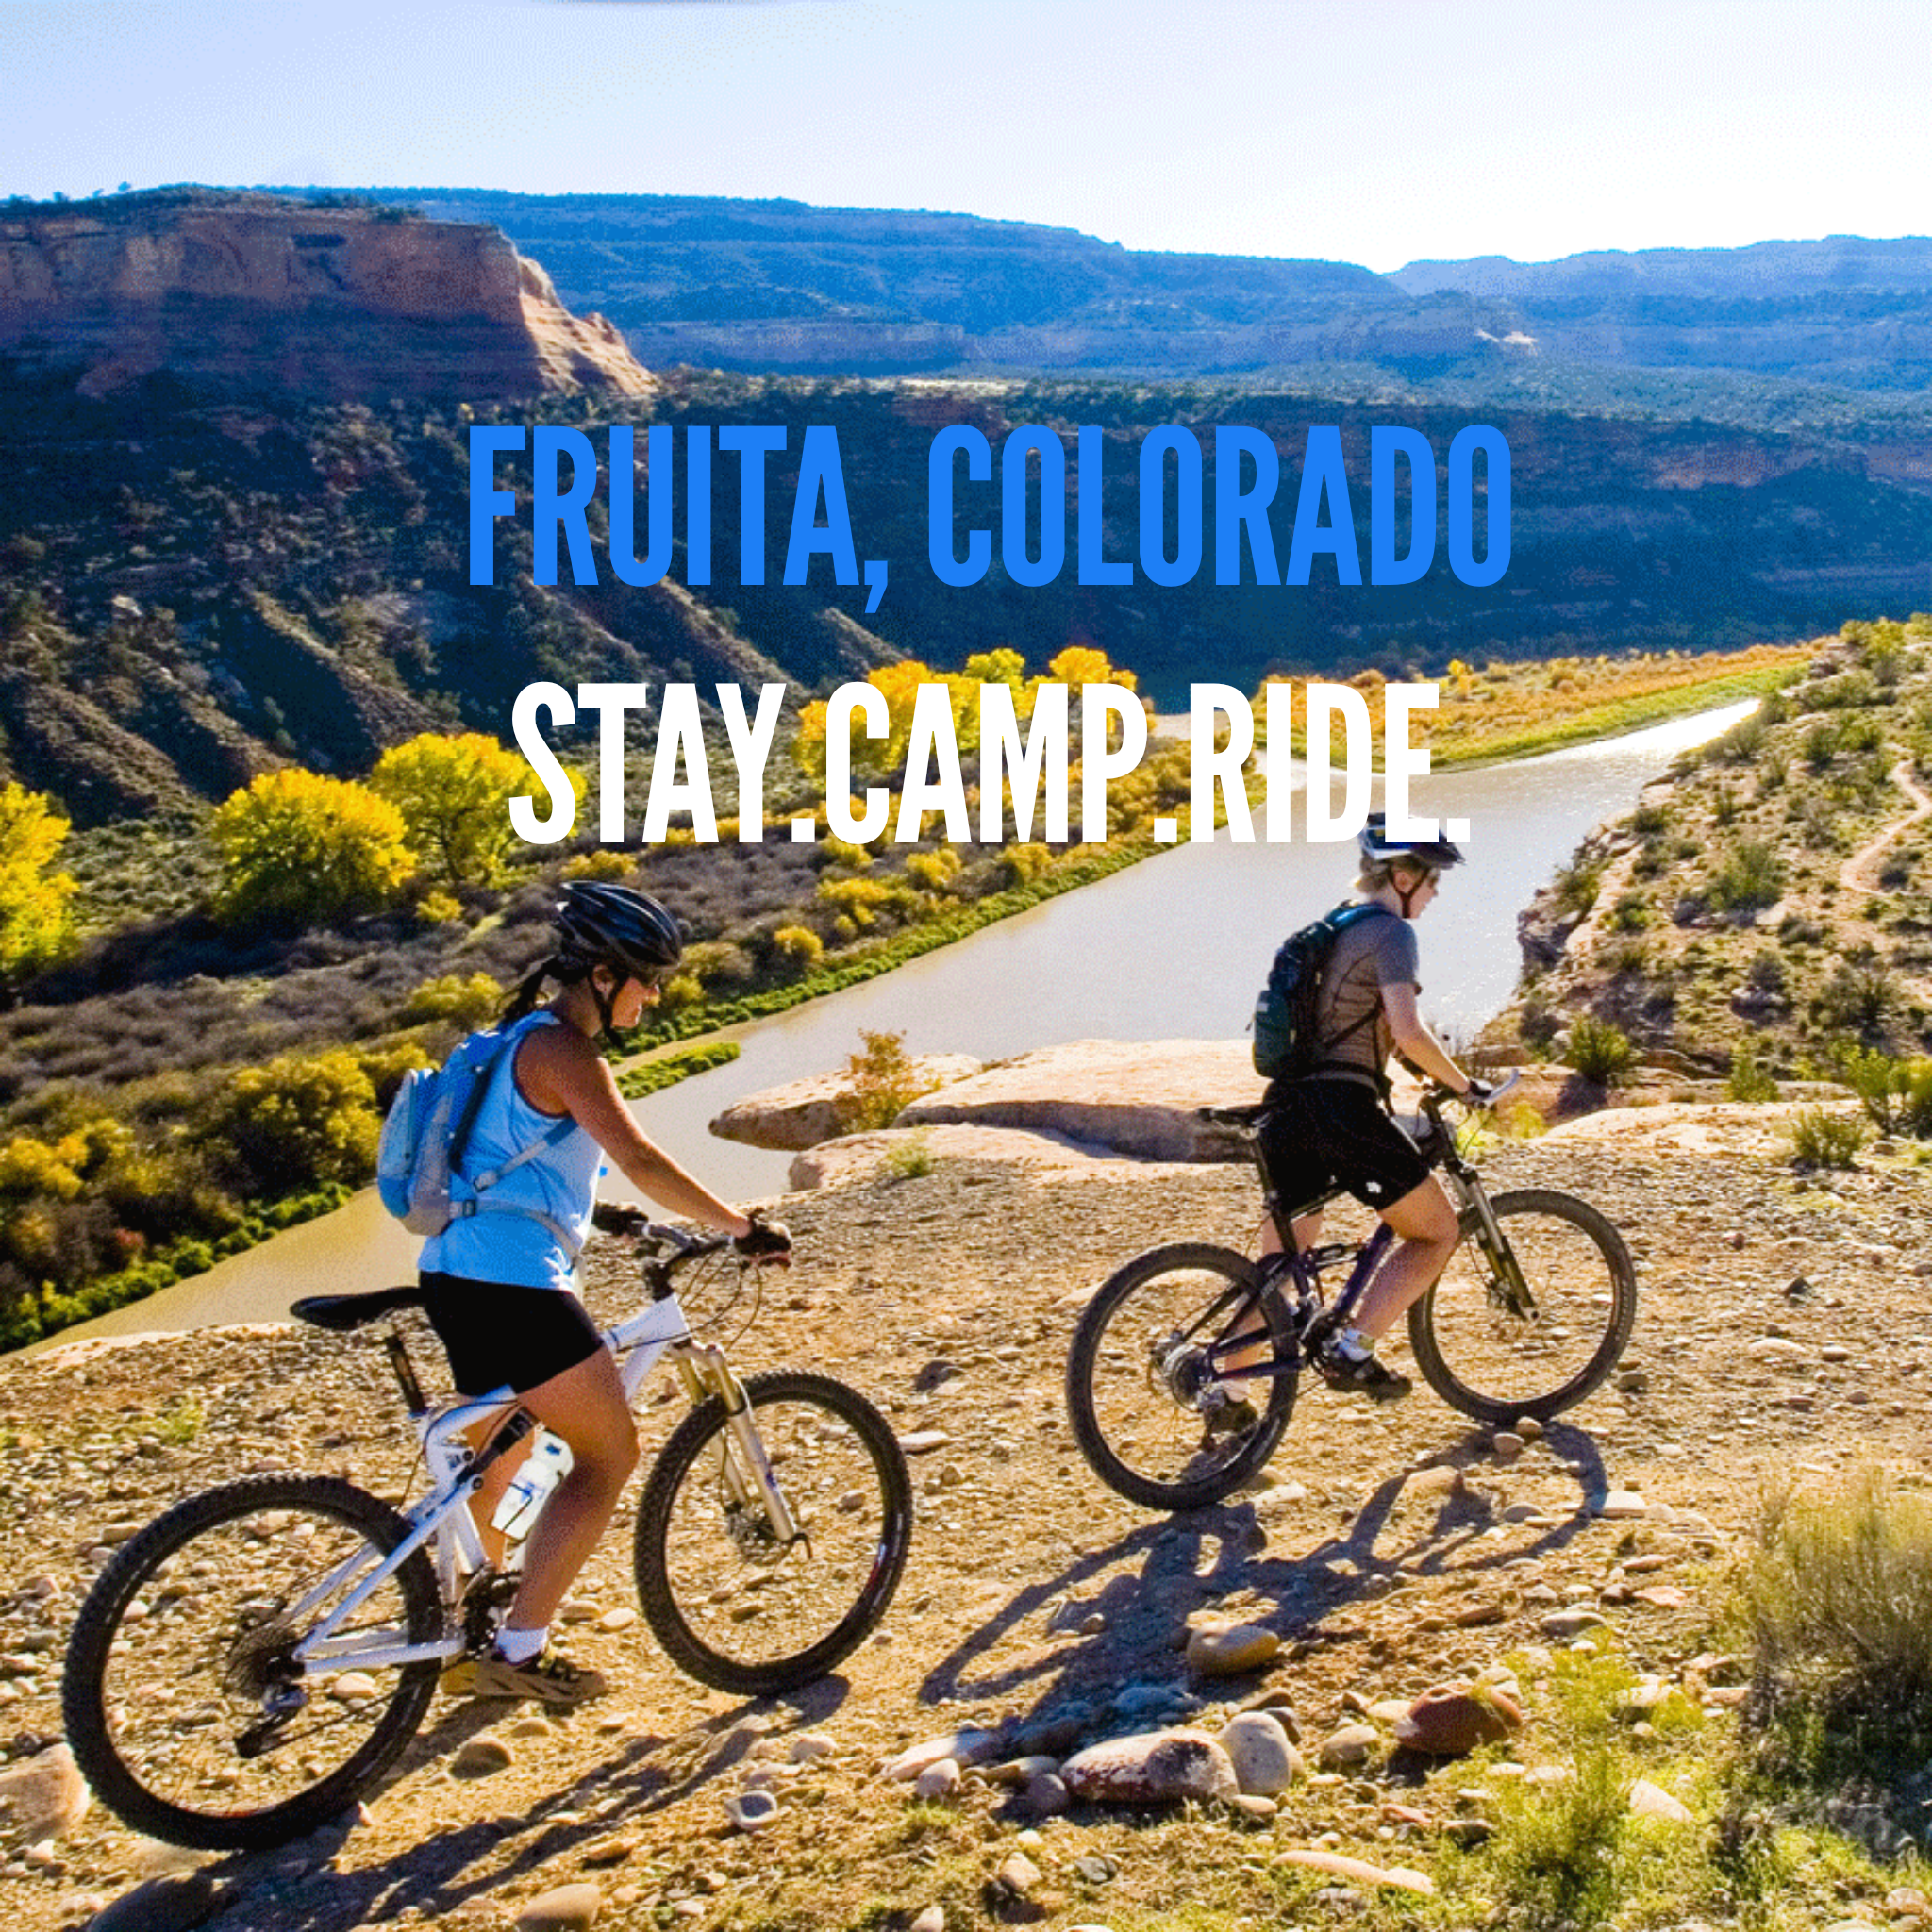 Fruita Colorado is making a name for itself � with world class mountain biking, superb canyon hiking trails, the Colorado River,